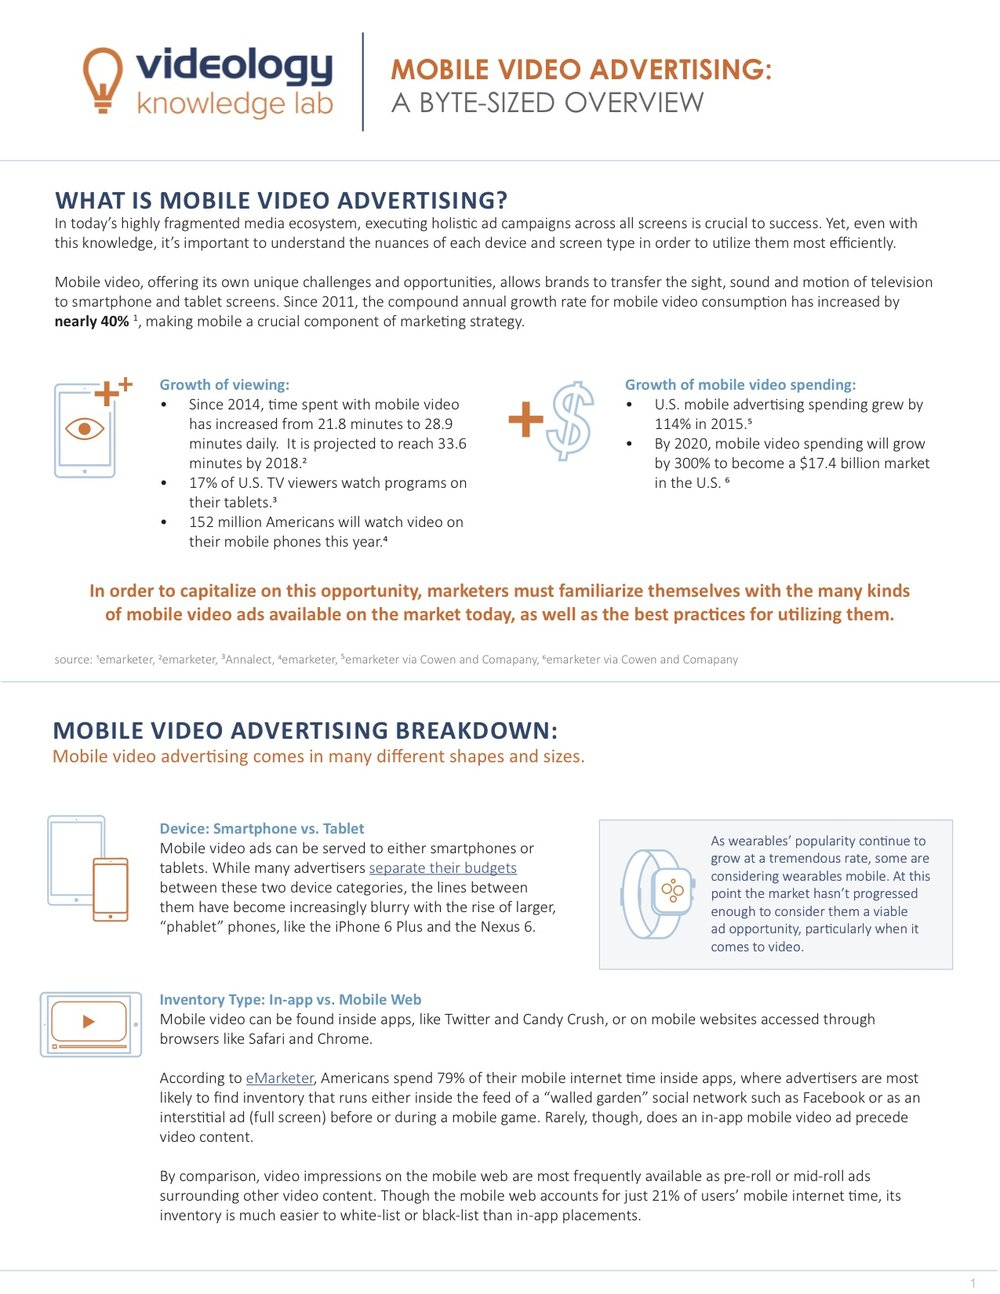 Videology_Lab-Mobile-Video-Advertising-1.jpg